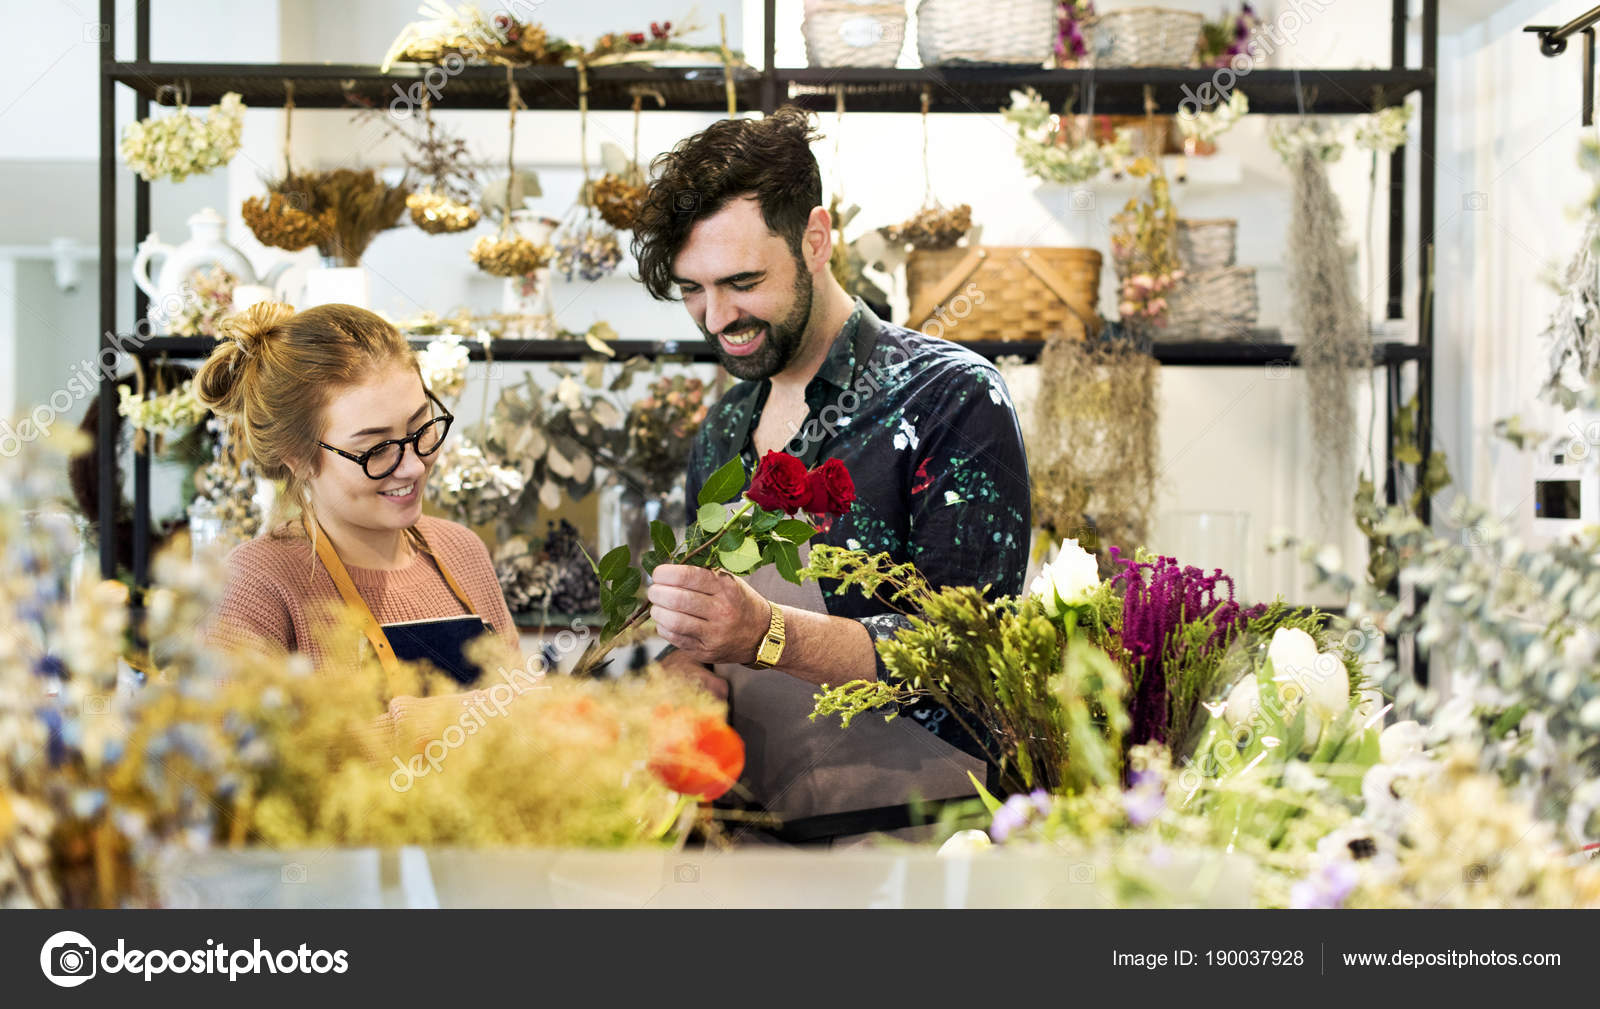 Florists making flower bouquet together stock photo rawpixel florists making flower bouquet together stock photo izmirmasajfo